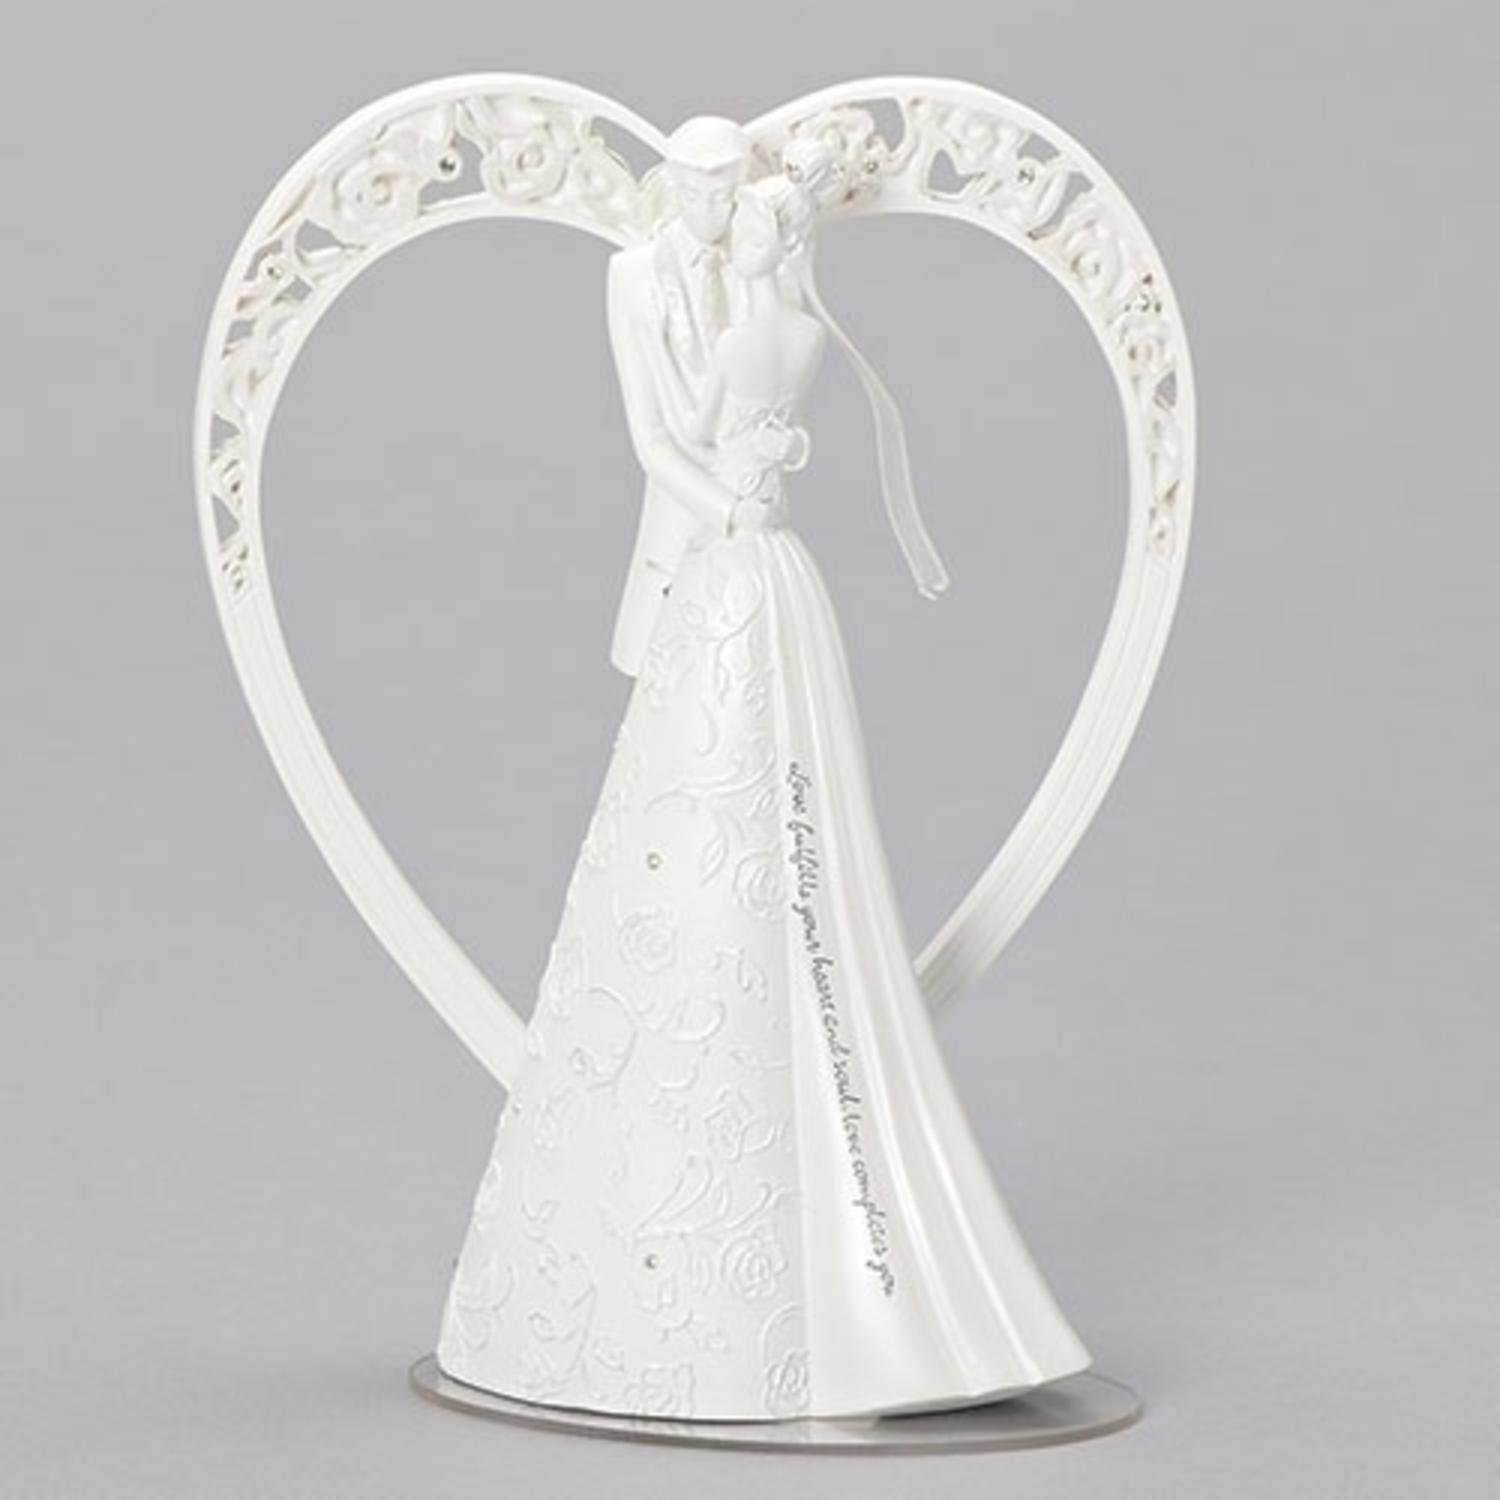 8.65'' Gina Freehill Language of Love Bride and Groom Wedding Cake Topper